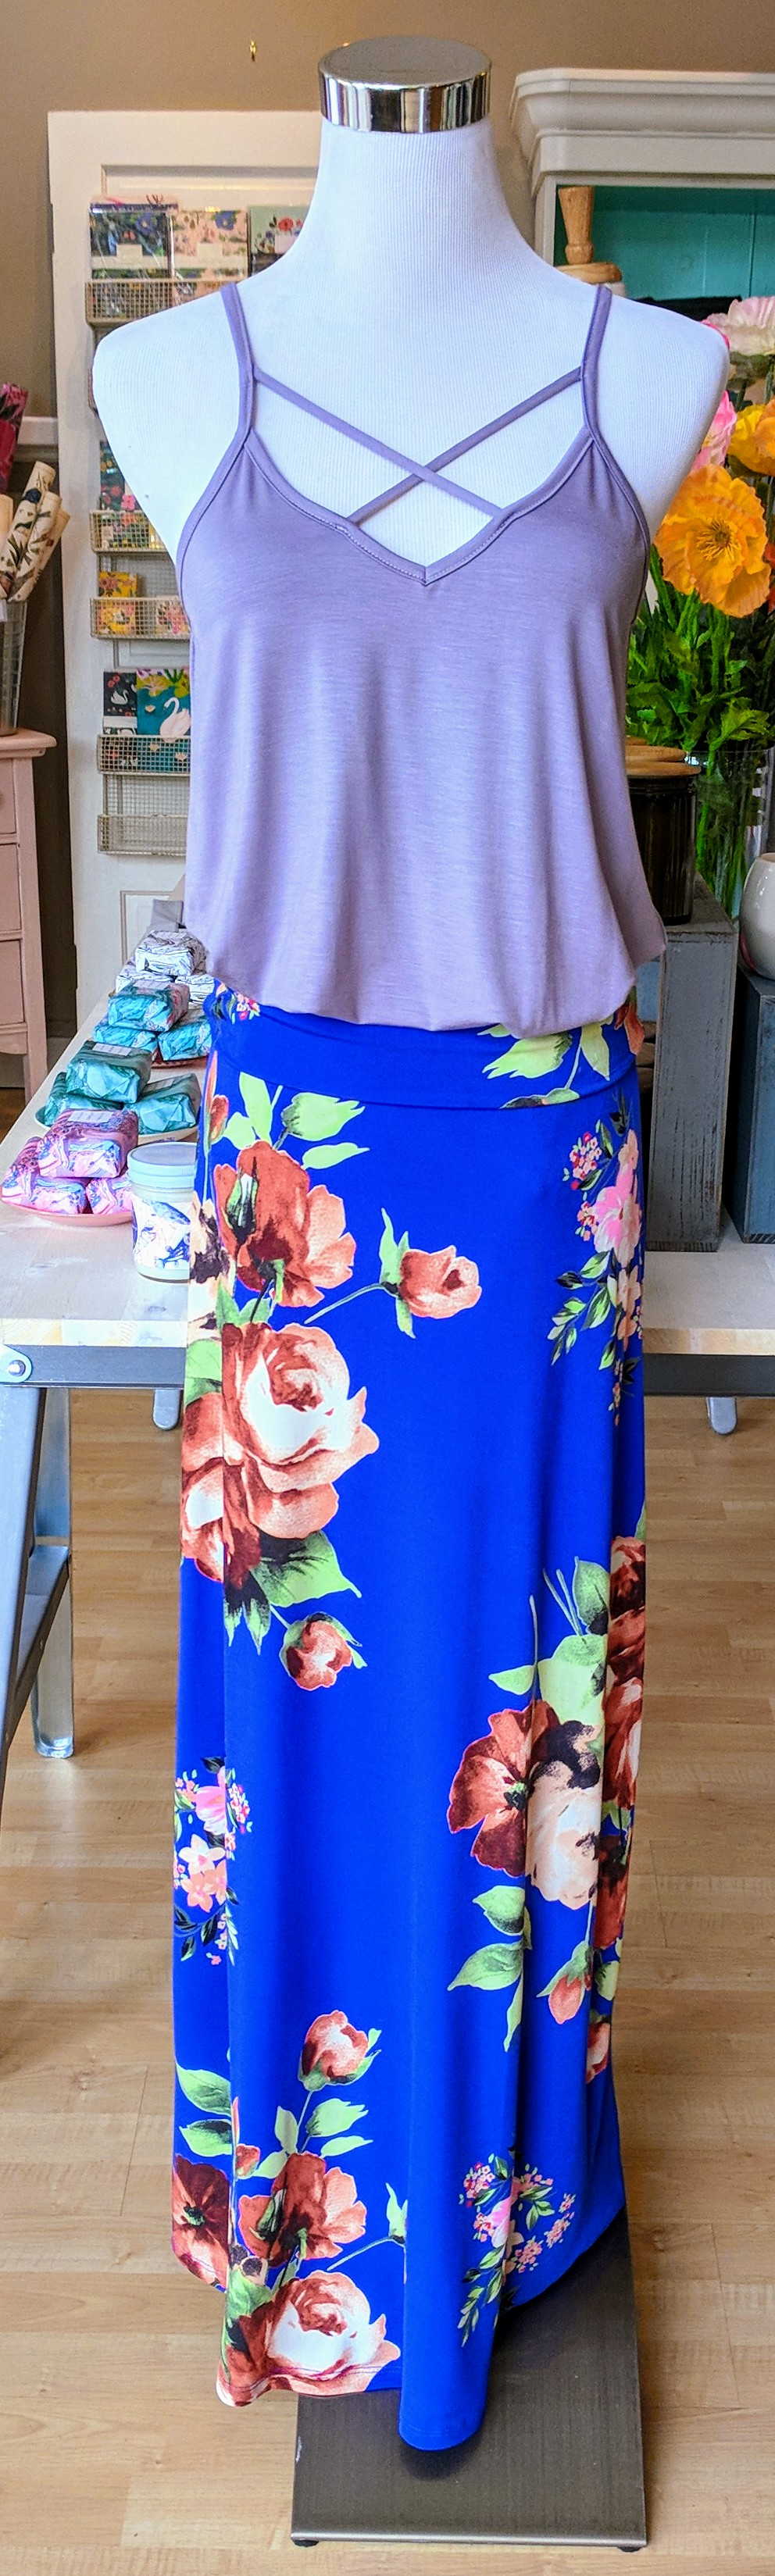 Royal floral maxi skirt with elastic waistband.